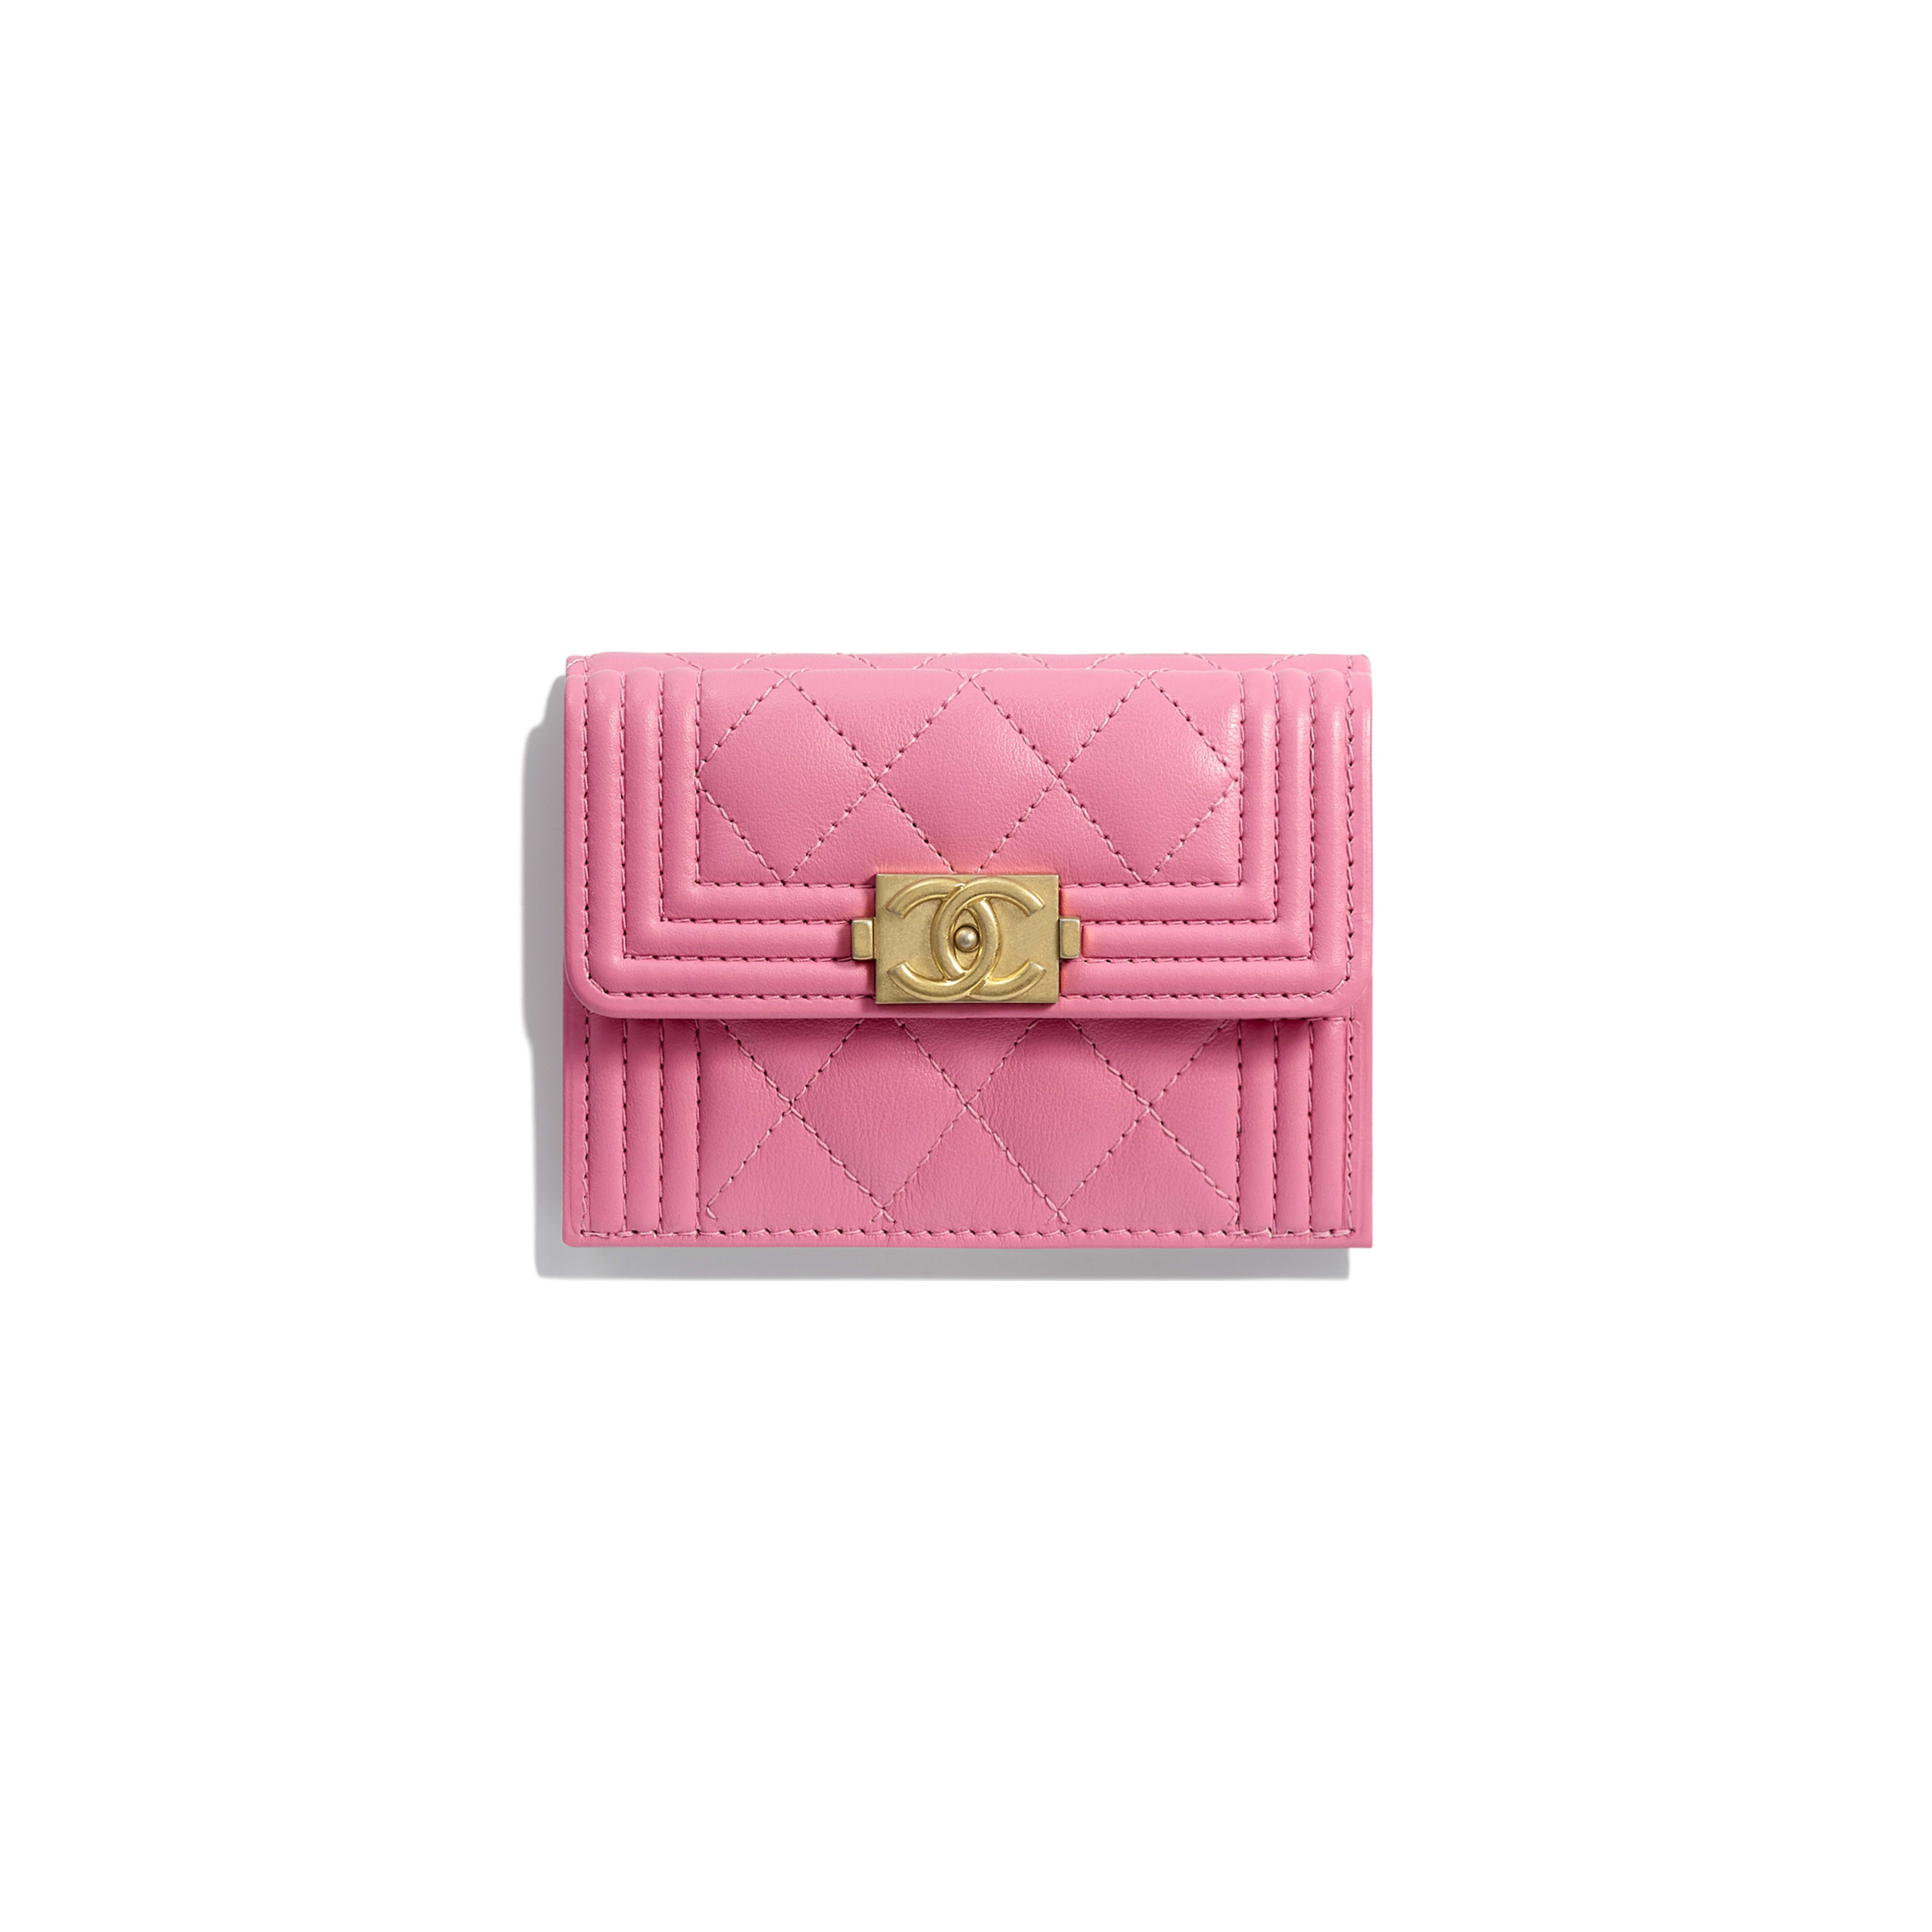 00b066ae388a70 Calfskin & Gold-Tone Metal Pink BOY CHANEL Small Flap Wallet | CHANEL